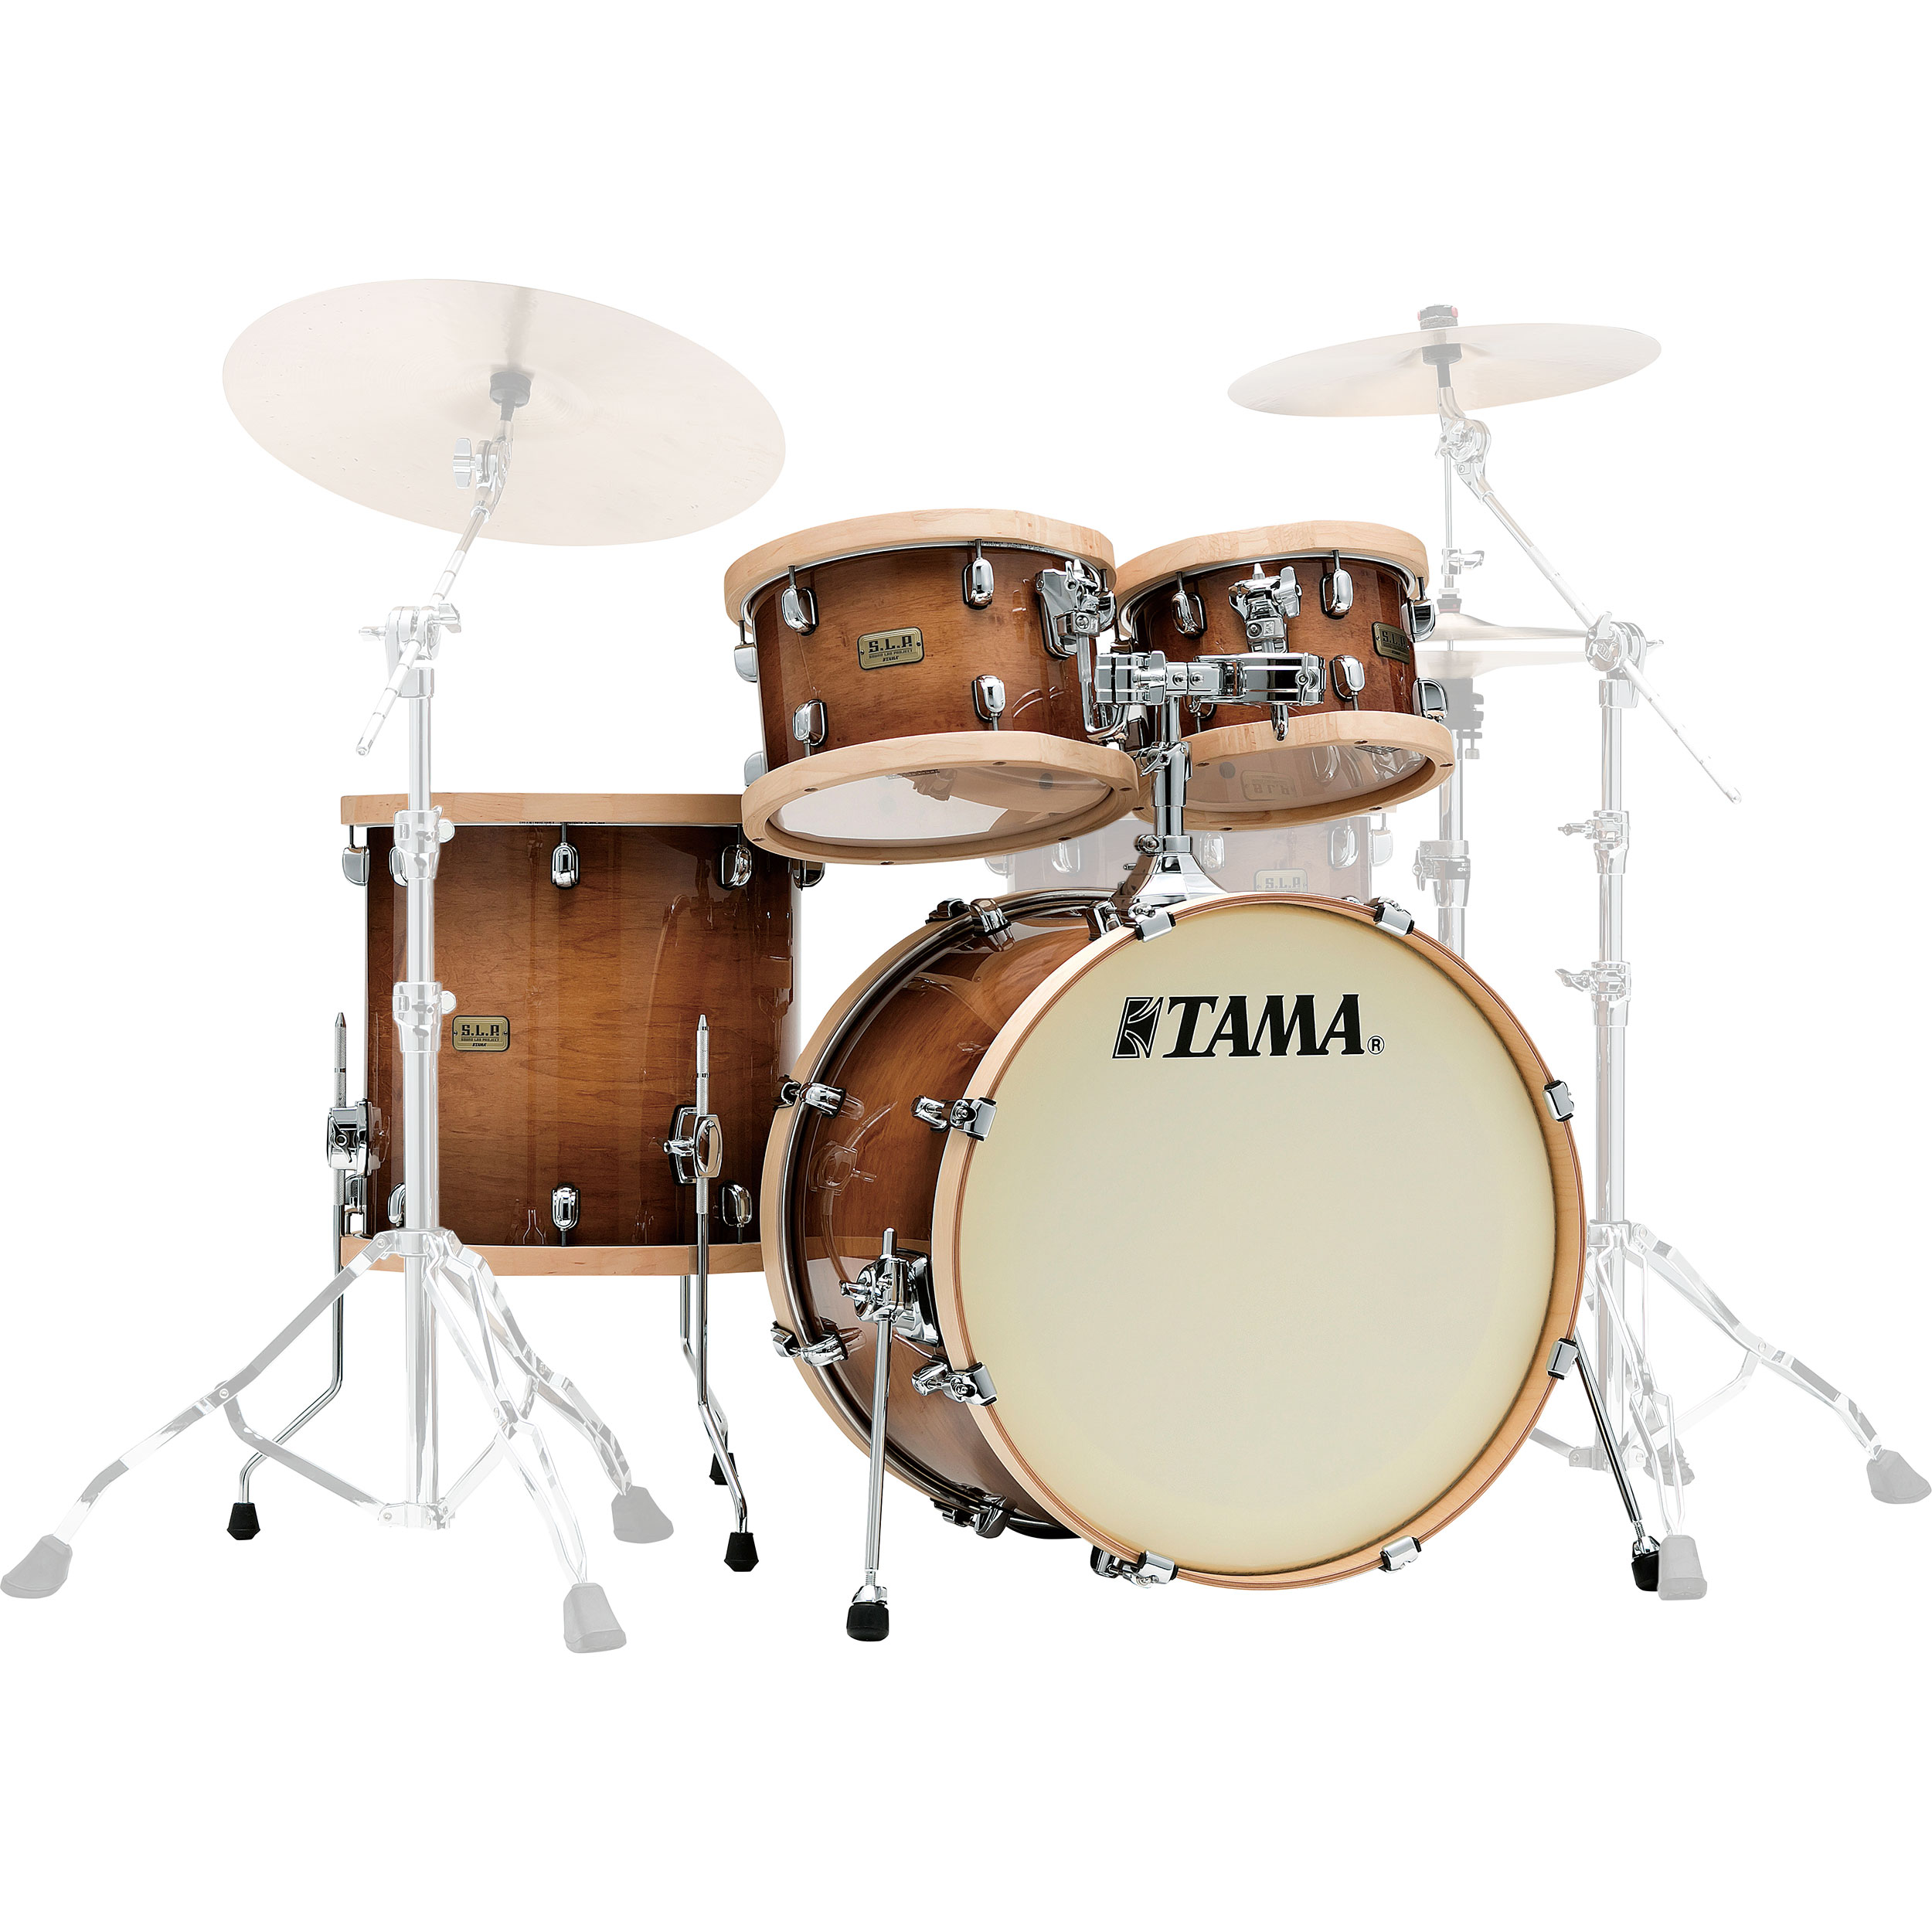 "Tama S.L.P. Studio Maple 4-Piece Drum Set Shell Pack (22"" Bass, 10/12/16"" Toms) in Gloss Sienna"